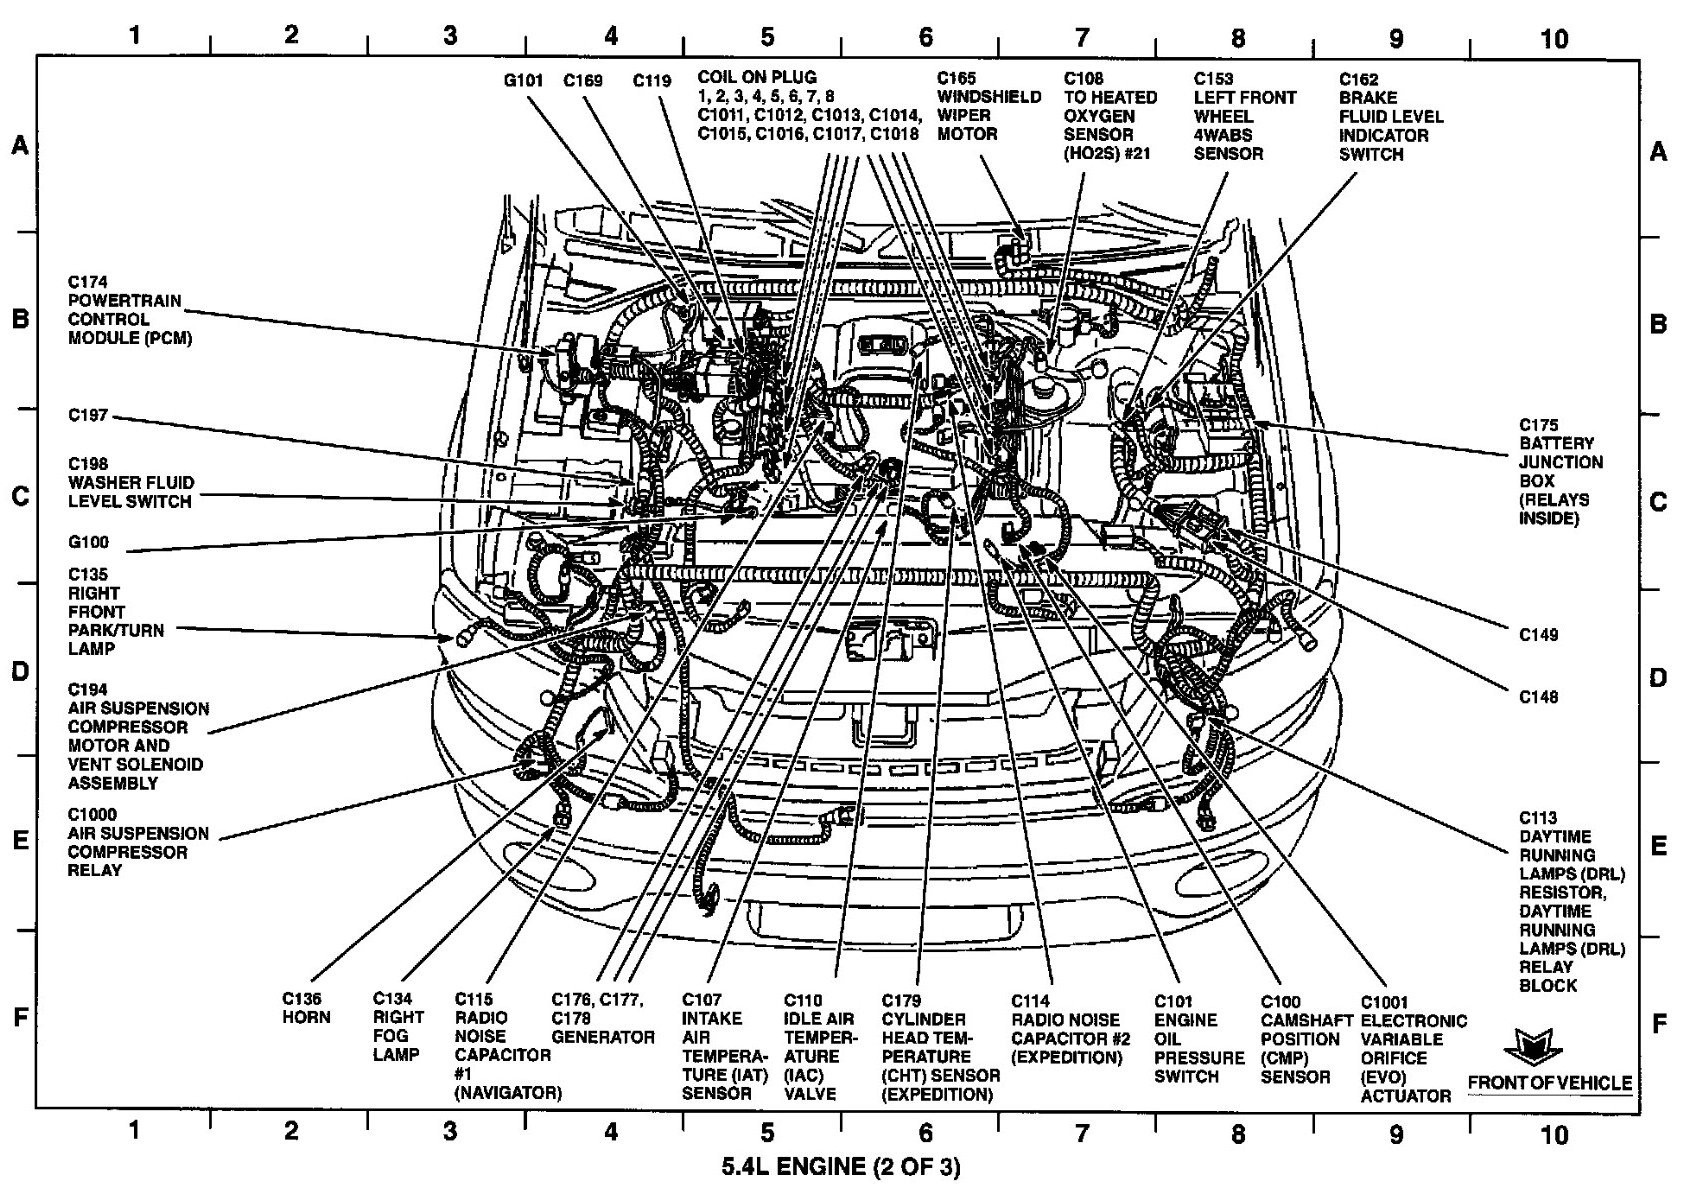 1998 ford Mustang Engine Diagram 2008 Bmw 328i Engine Diagram Bmw Wiring  Diagrams Instructions